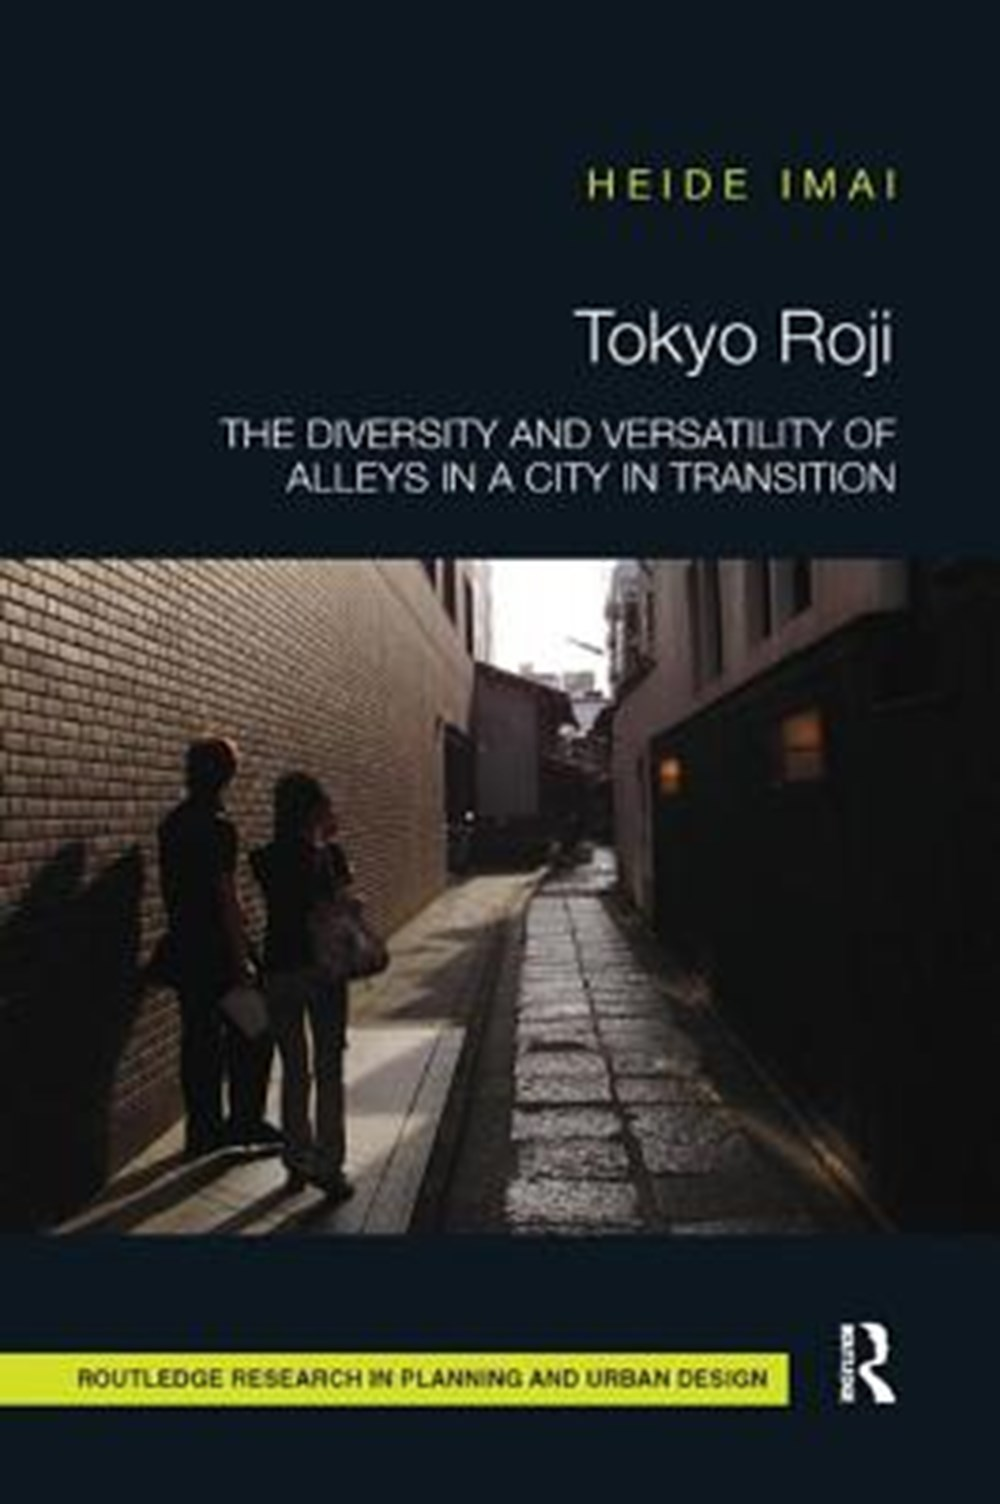 Tokyo Roji The Diversity and Versatility of Alleys in a City in Transition